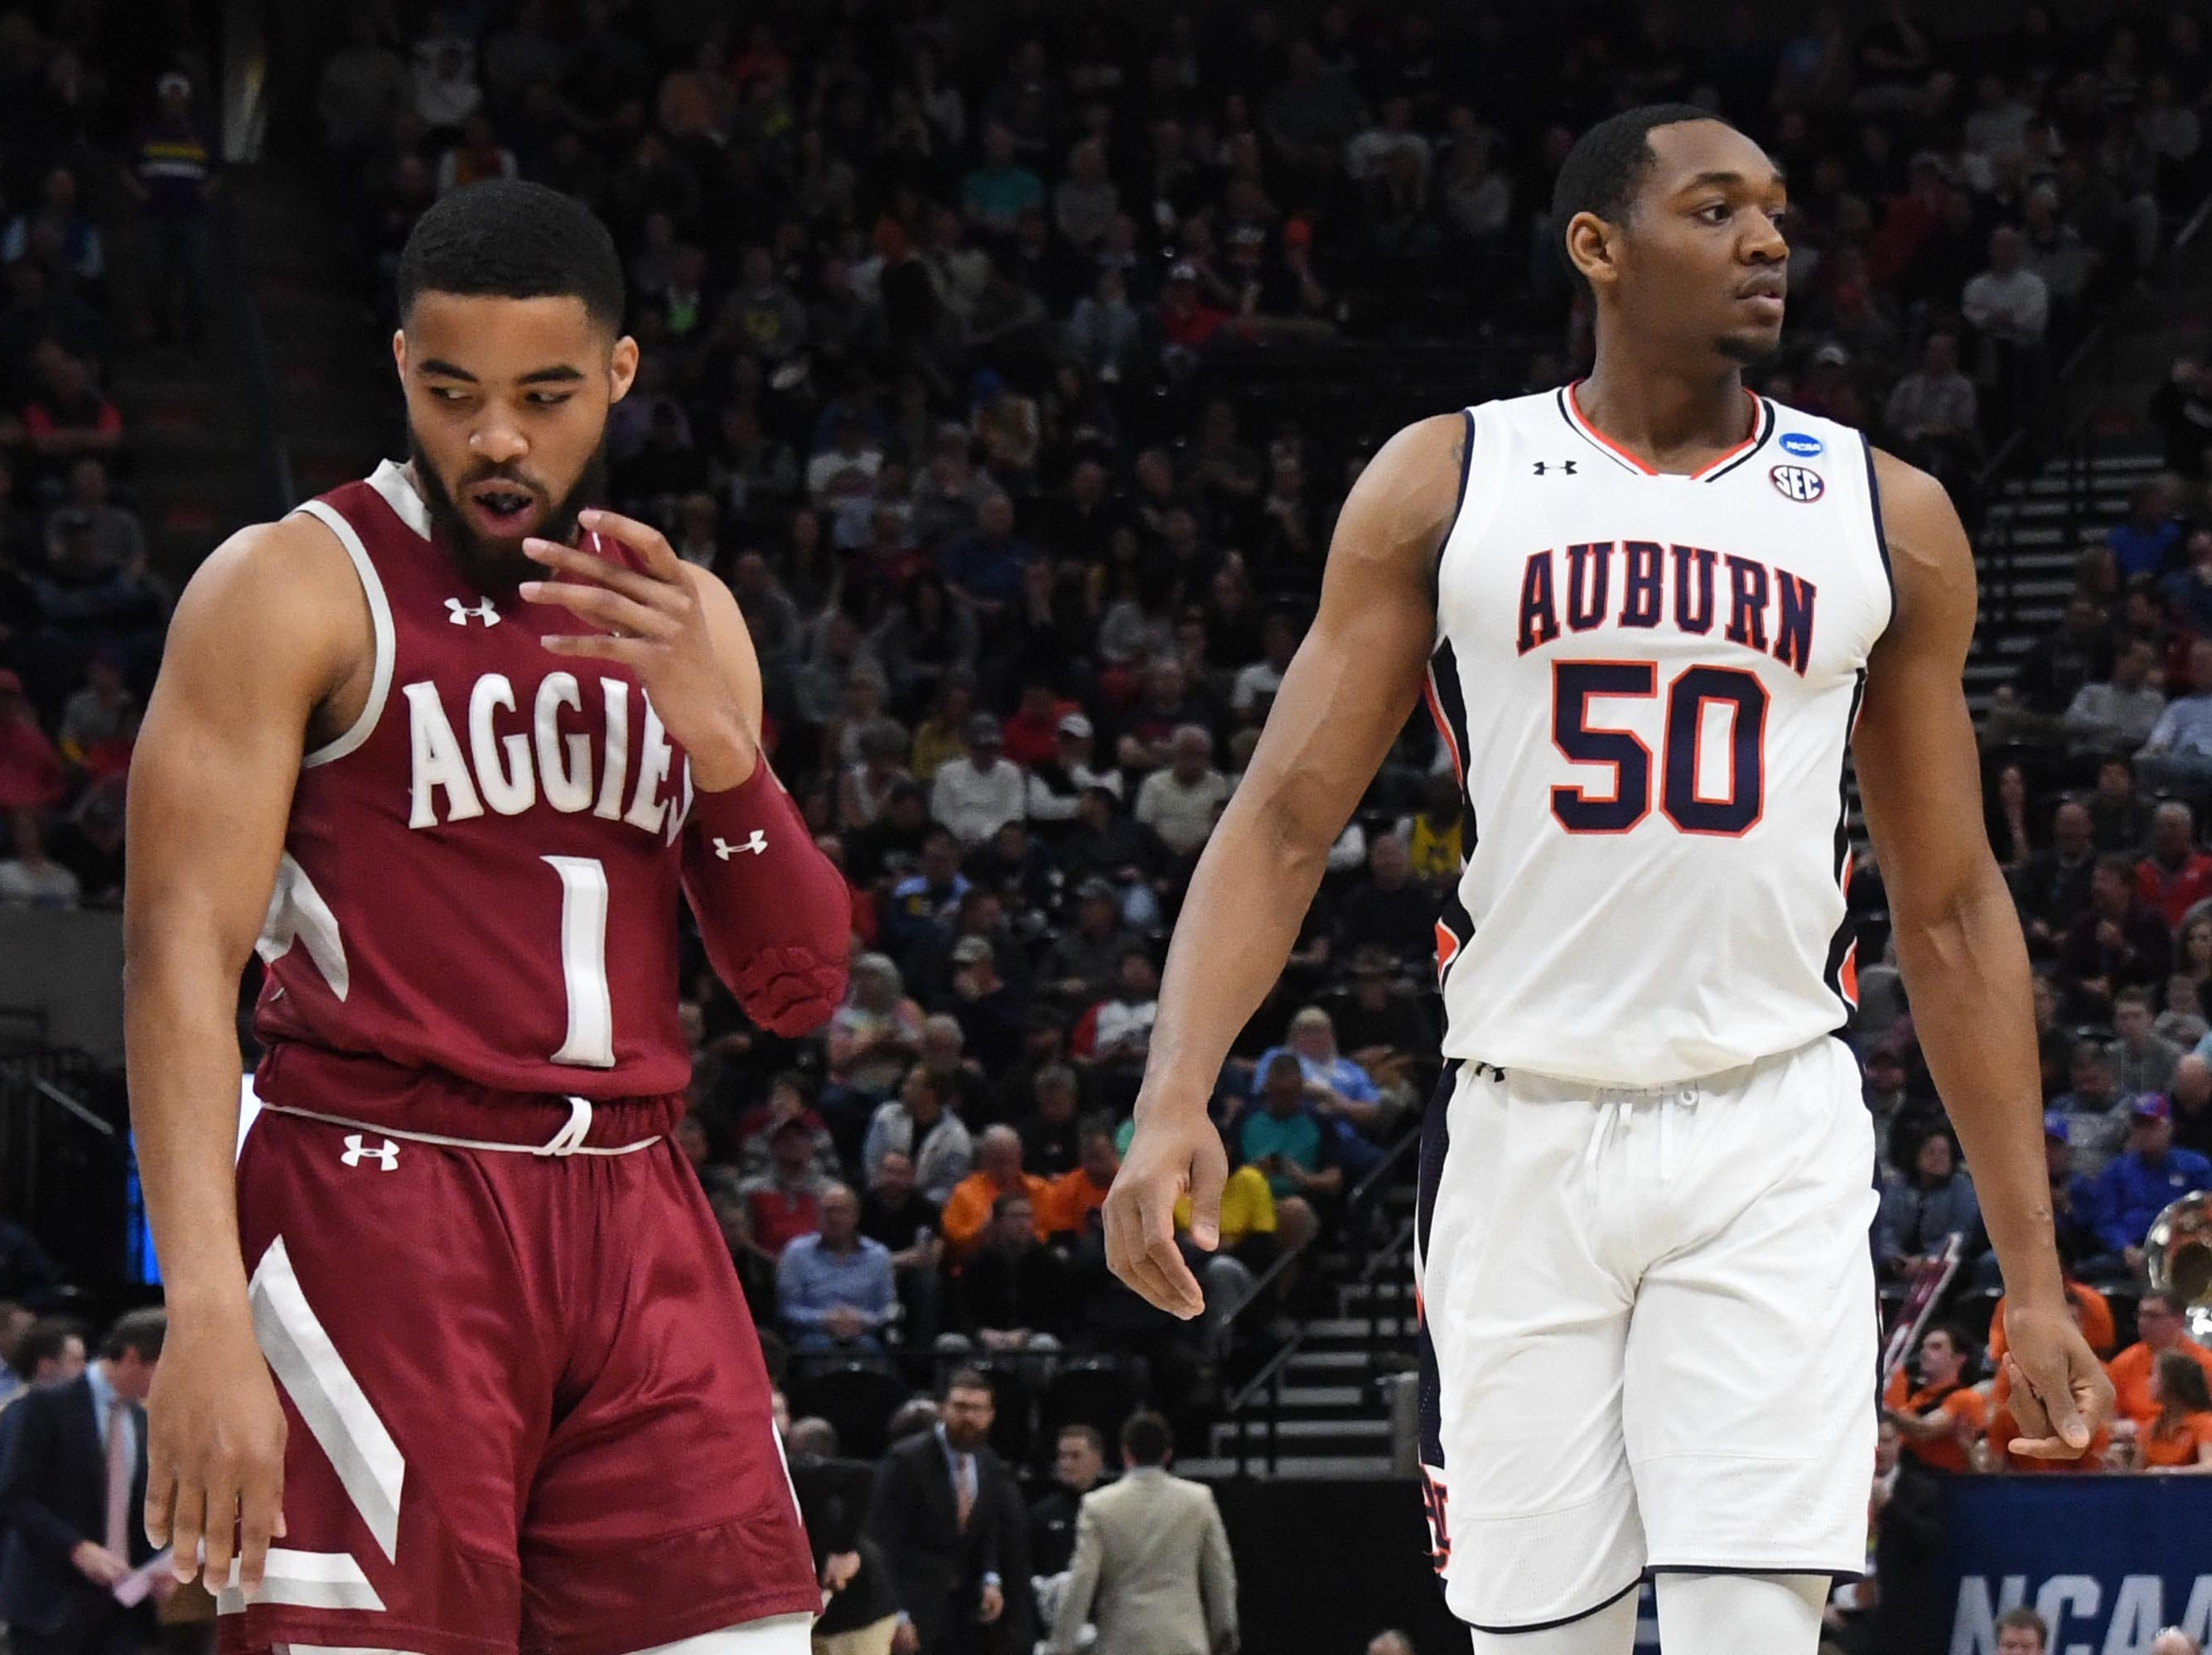 Mar 21, 2019; Salt Lake City, UT, USA; New Mexico State Aggies guard Shunn Buchanan (1) and Auburn Tigers center Austin Wiley (50) react during the first half in the first round of the 2019 NCAA Tournament at Vivint Smart Home Arena. Mandatory Credit: Kirby Lee-USA TODAY Sports